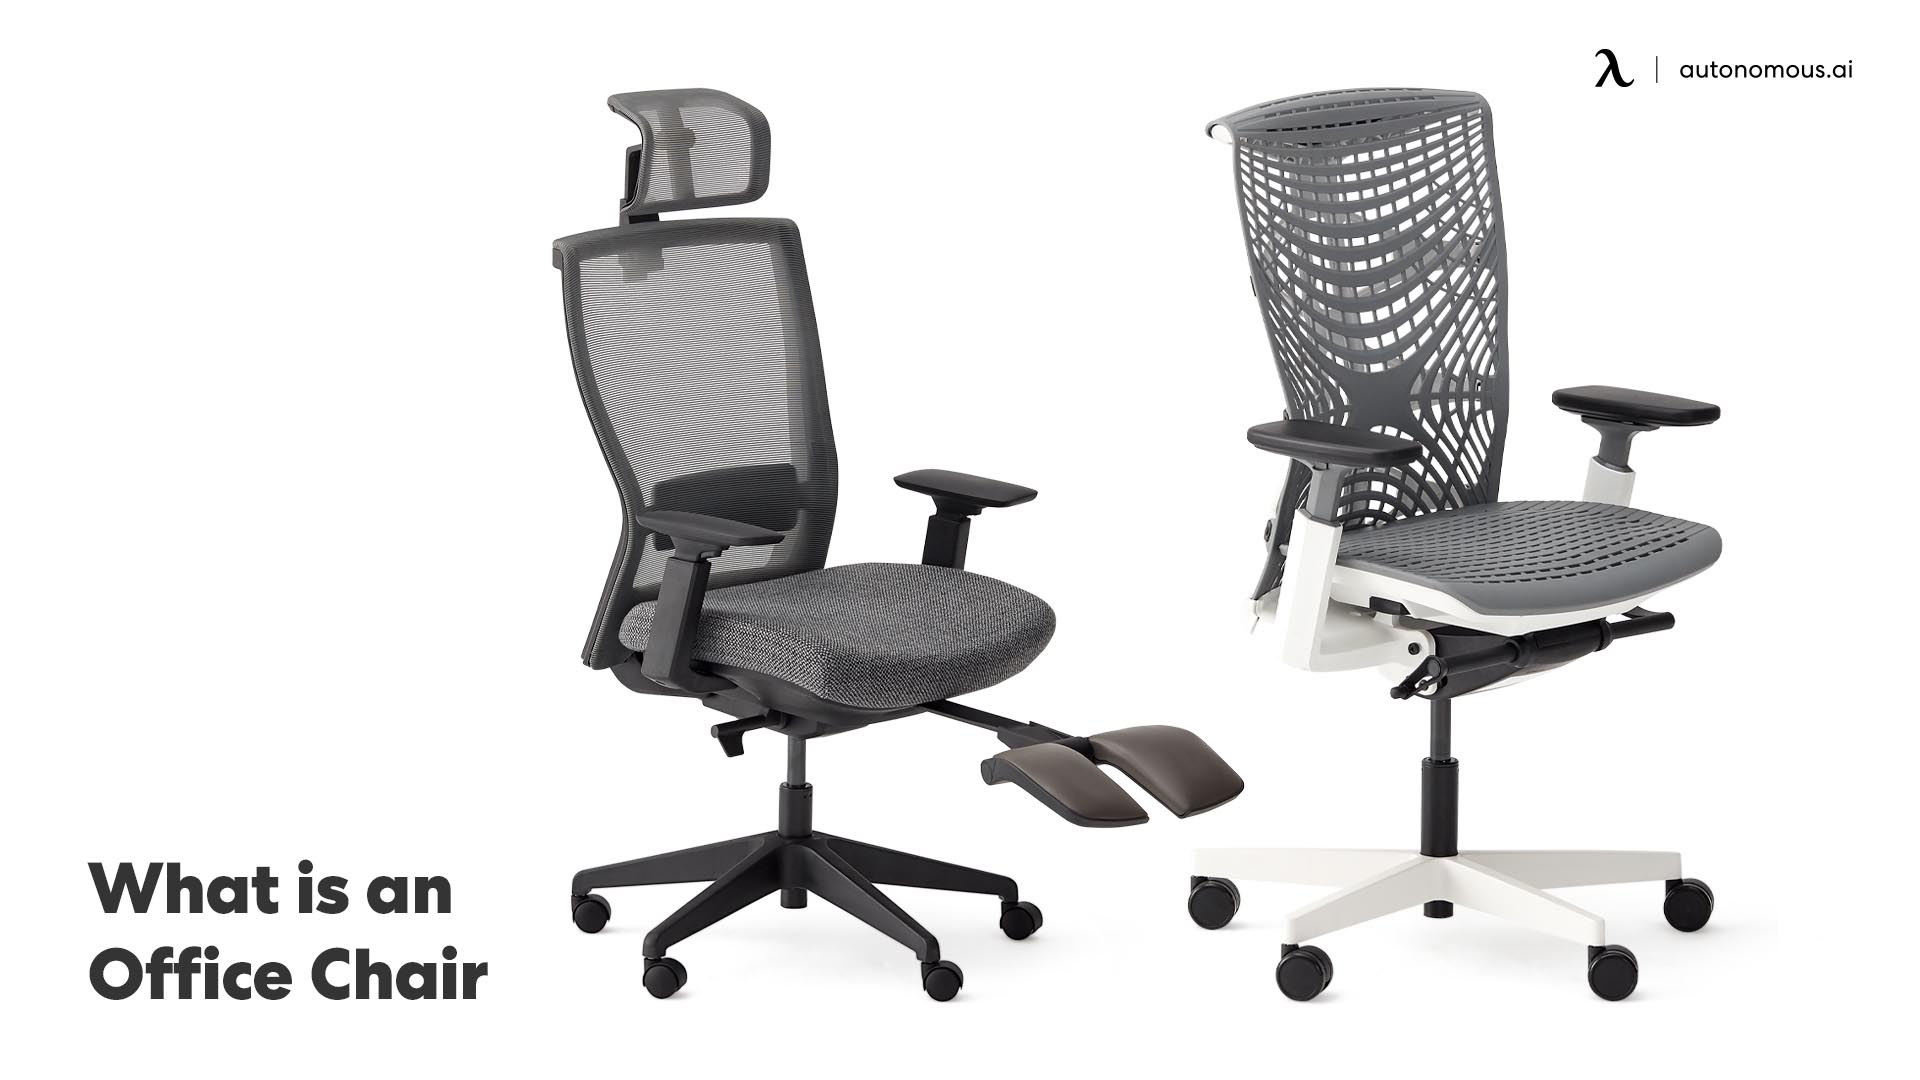 What Is an Office Chair?